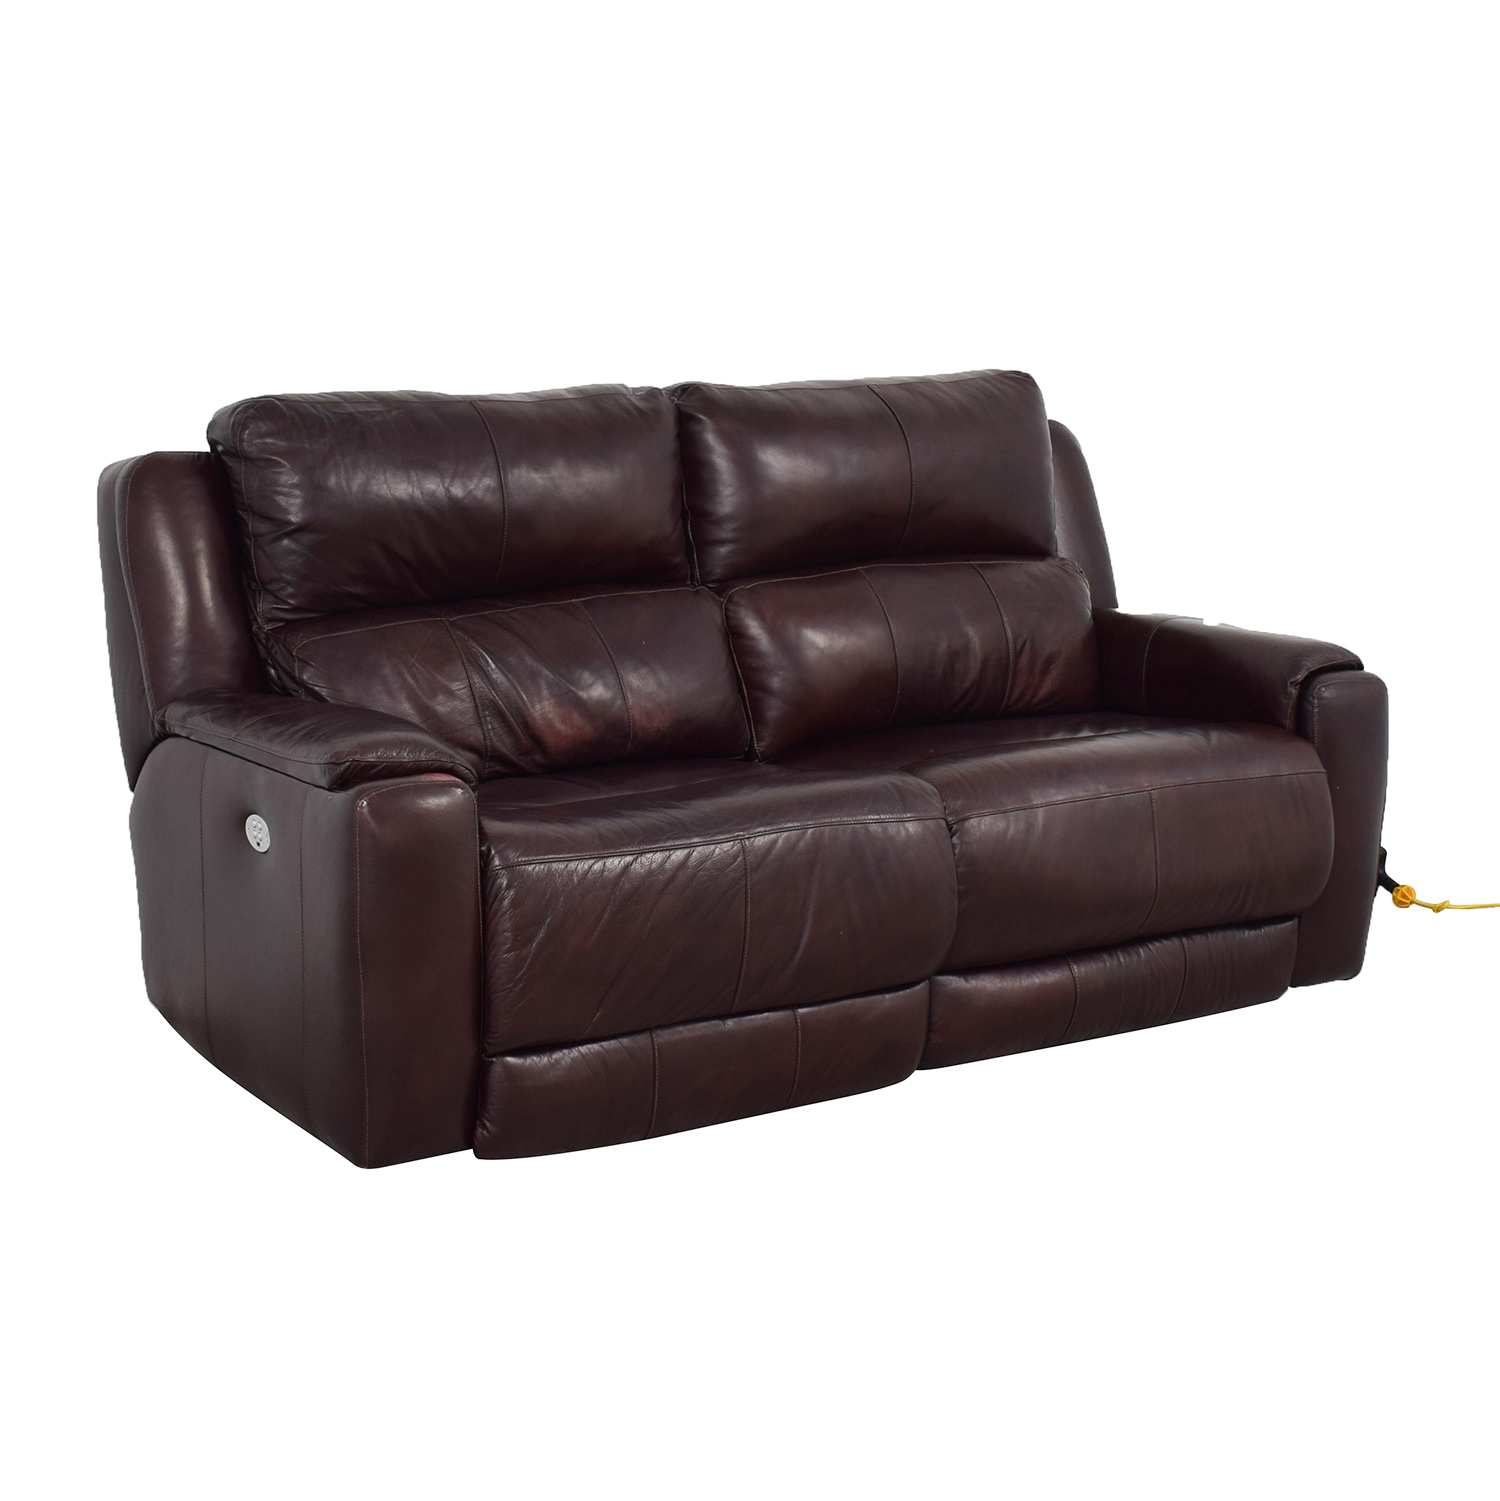 Raymour & Flanigan Raymour & Flanigan Brown Leather Electric Recliner for sale